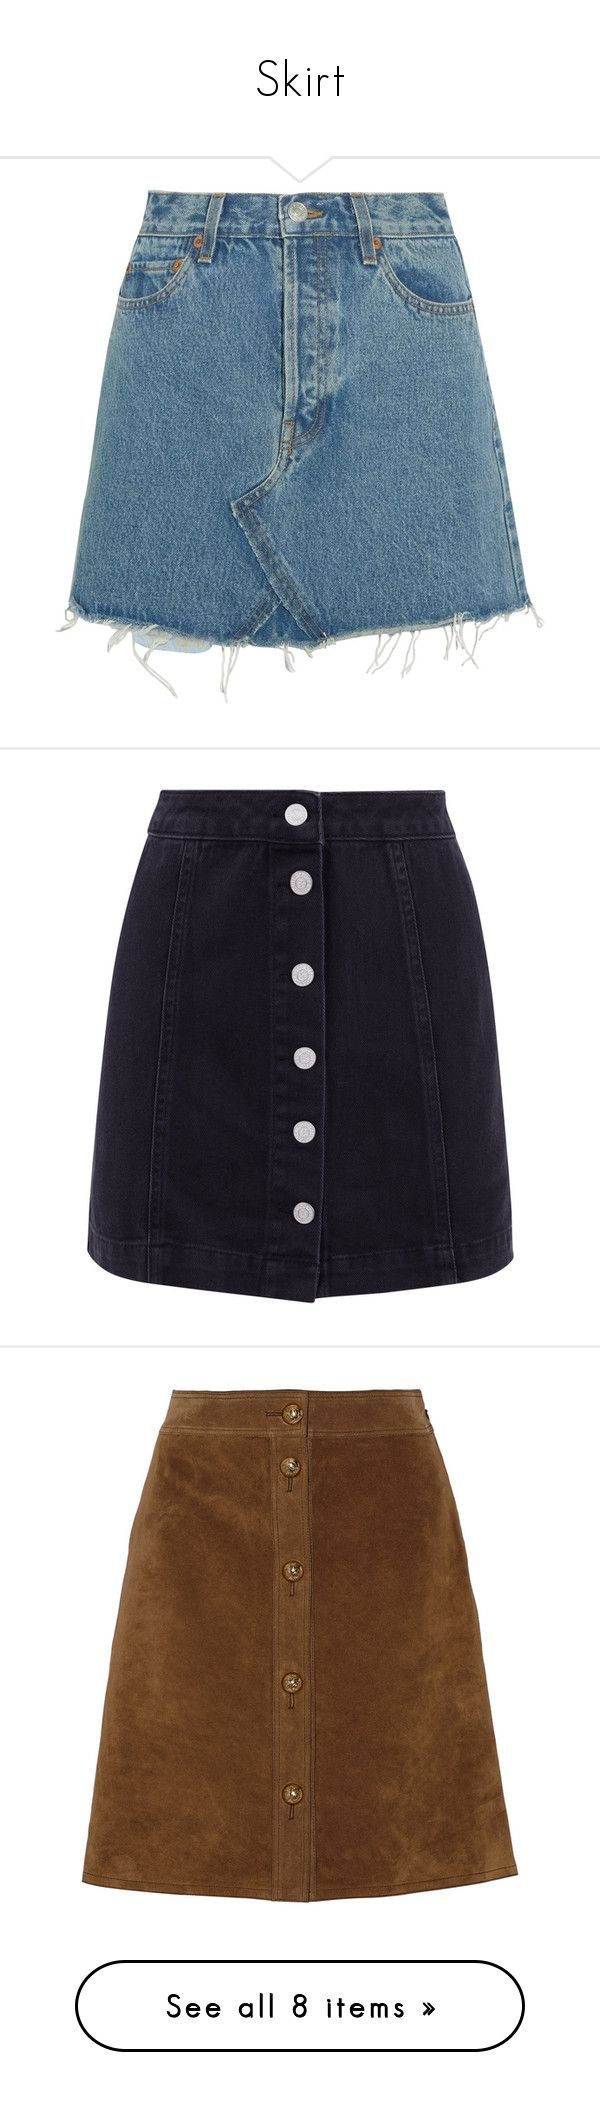 """Skirt"" by eleonore-plot ❤ liked on Polyvore featuring skirts, mini skirts, bottoms, saias, blue, short mini skirts, high waisted mini skirt, short blue skirt, distressed denim mini skirt and short skirt"